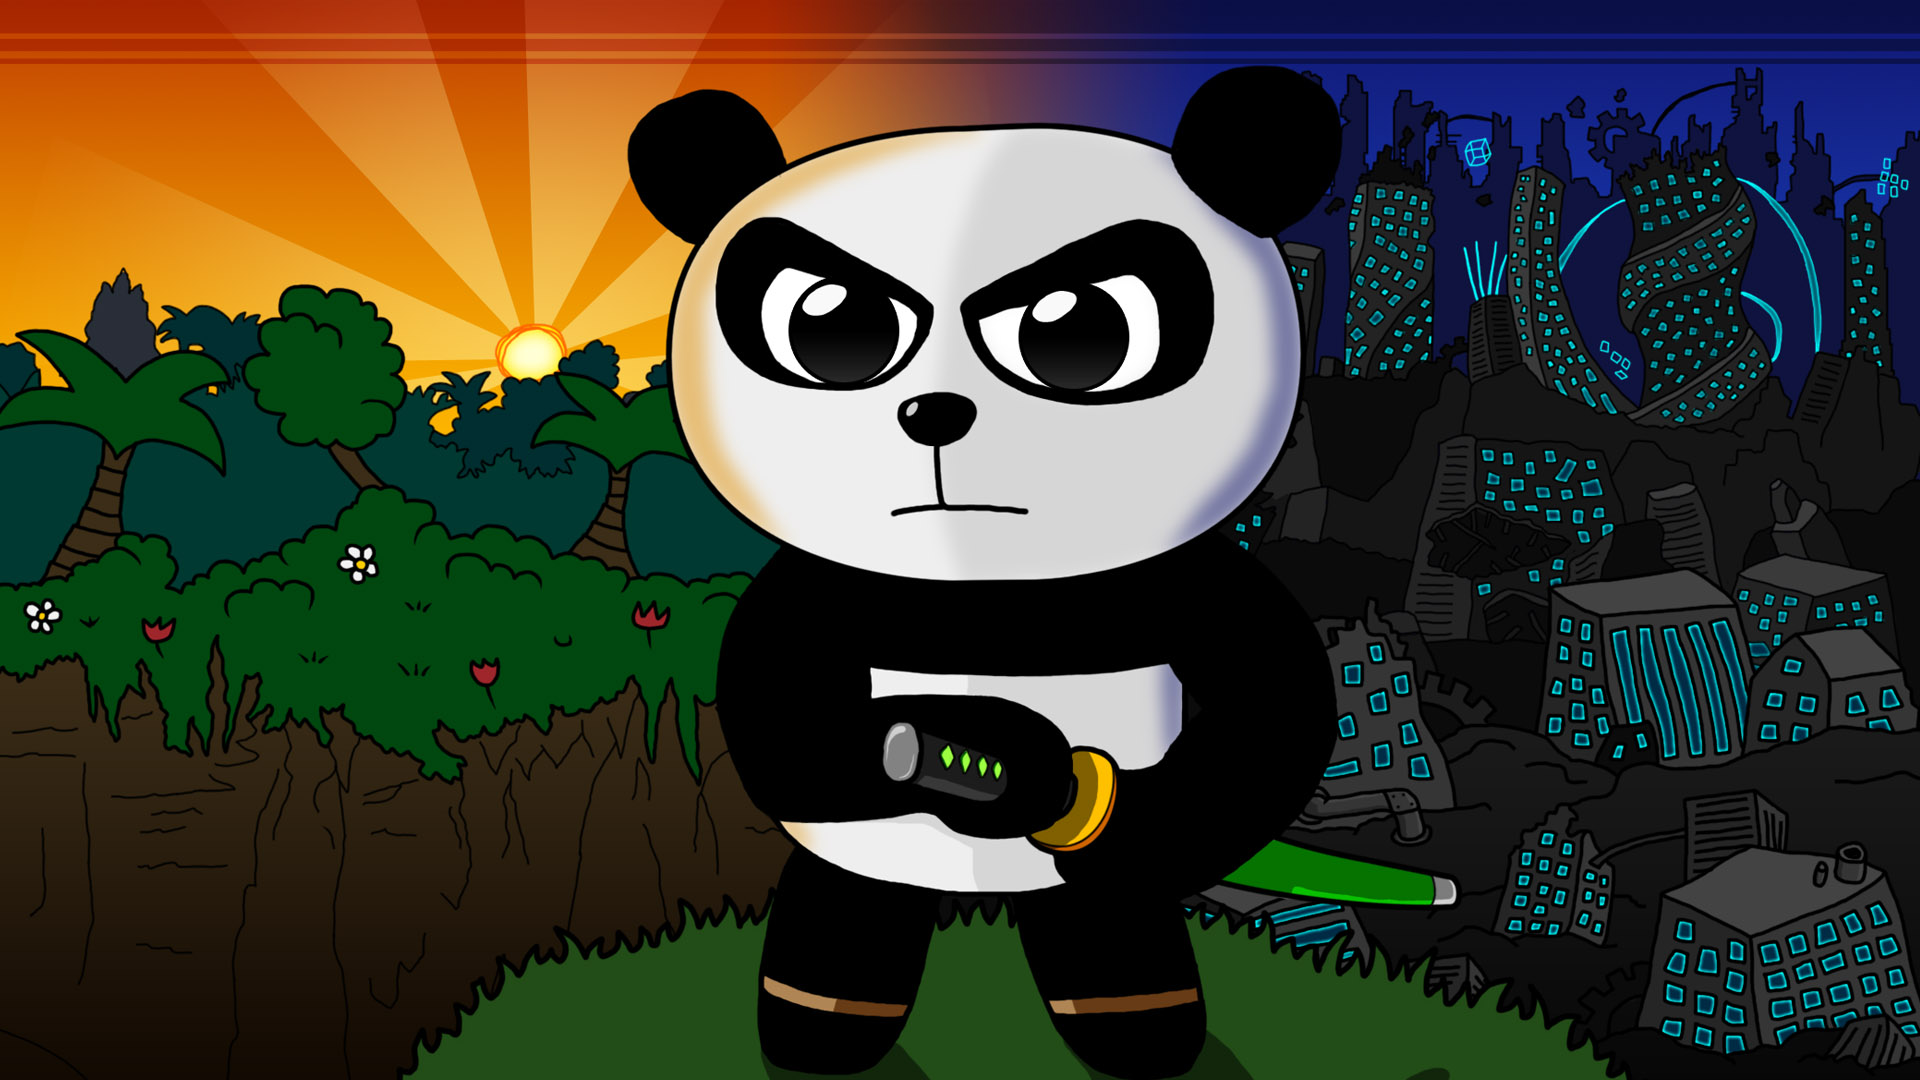 Card 1 Of 6Artwork · Panda Guardian